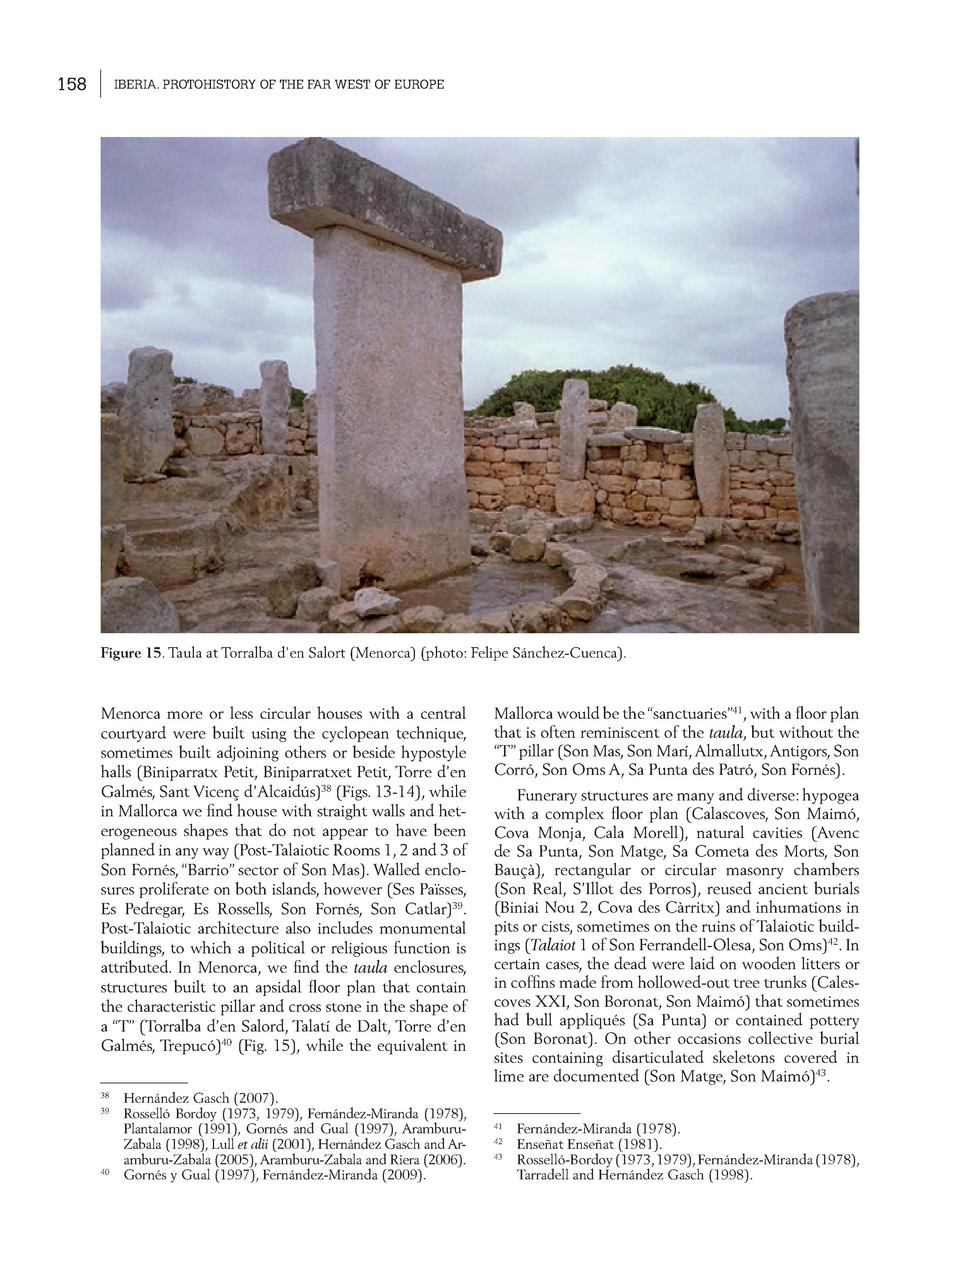 158  IBERIA. PROTOHISTORY OF THE FAR WEST OF EUROPE  Figure 15. Taula at Torralba d   en Salort  Menorca   photo  Felipe S...